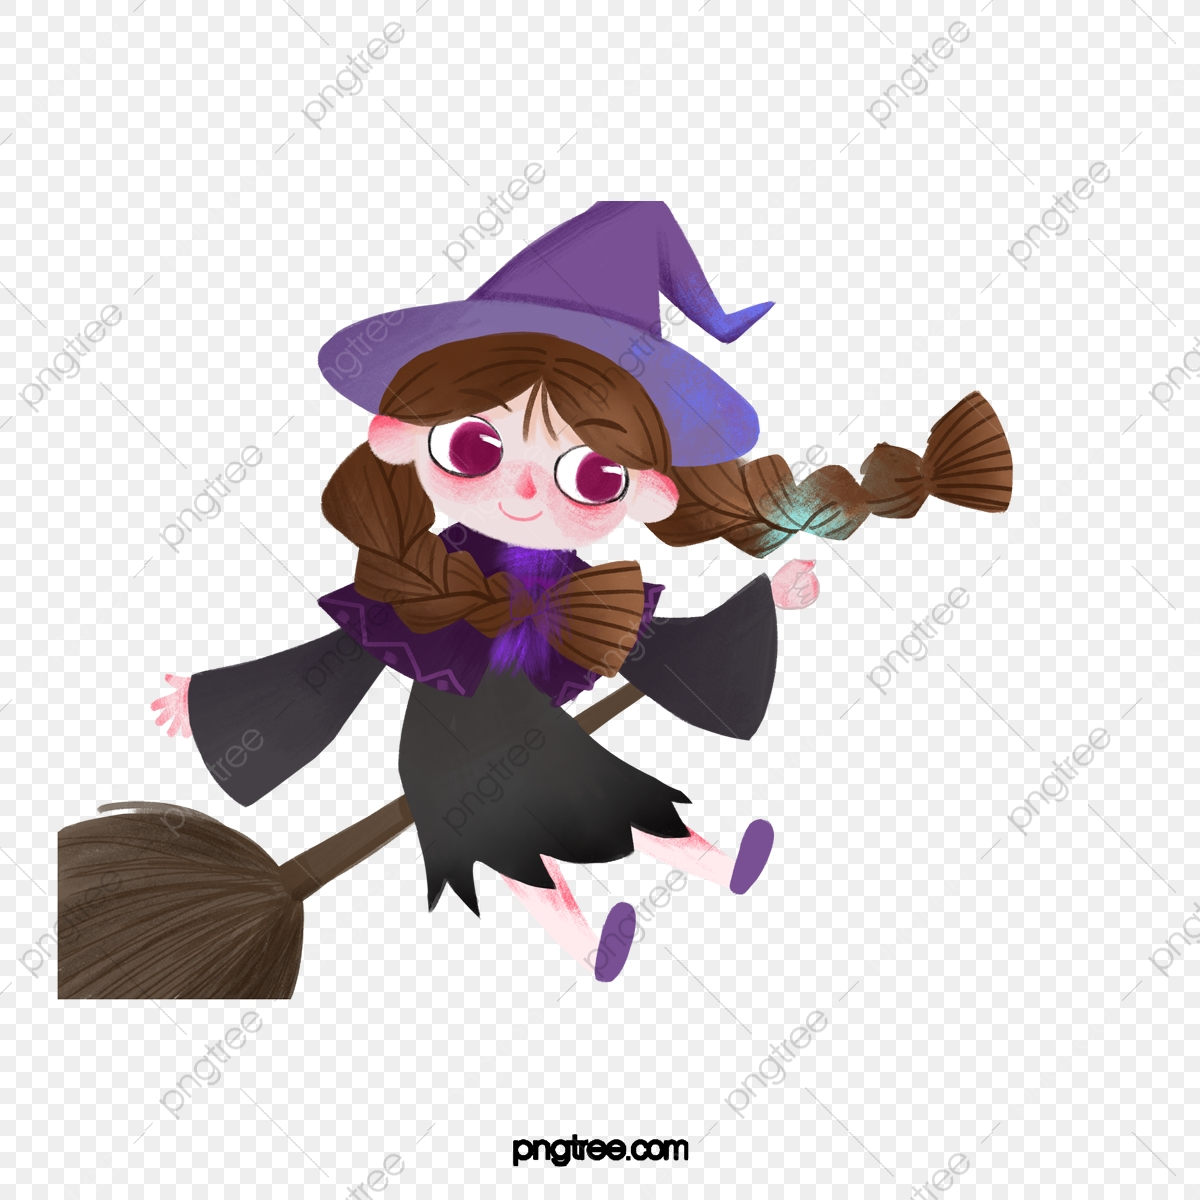 Broom Halloween Clip Art Free | Geographics Clipart for Stationery